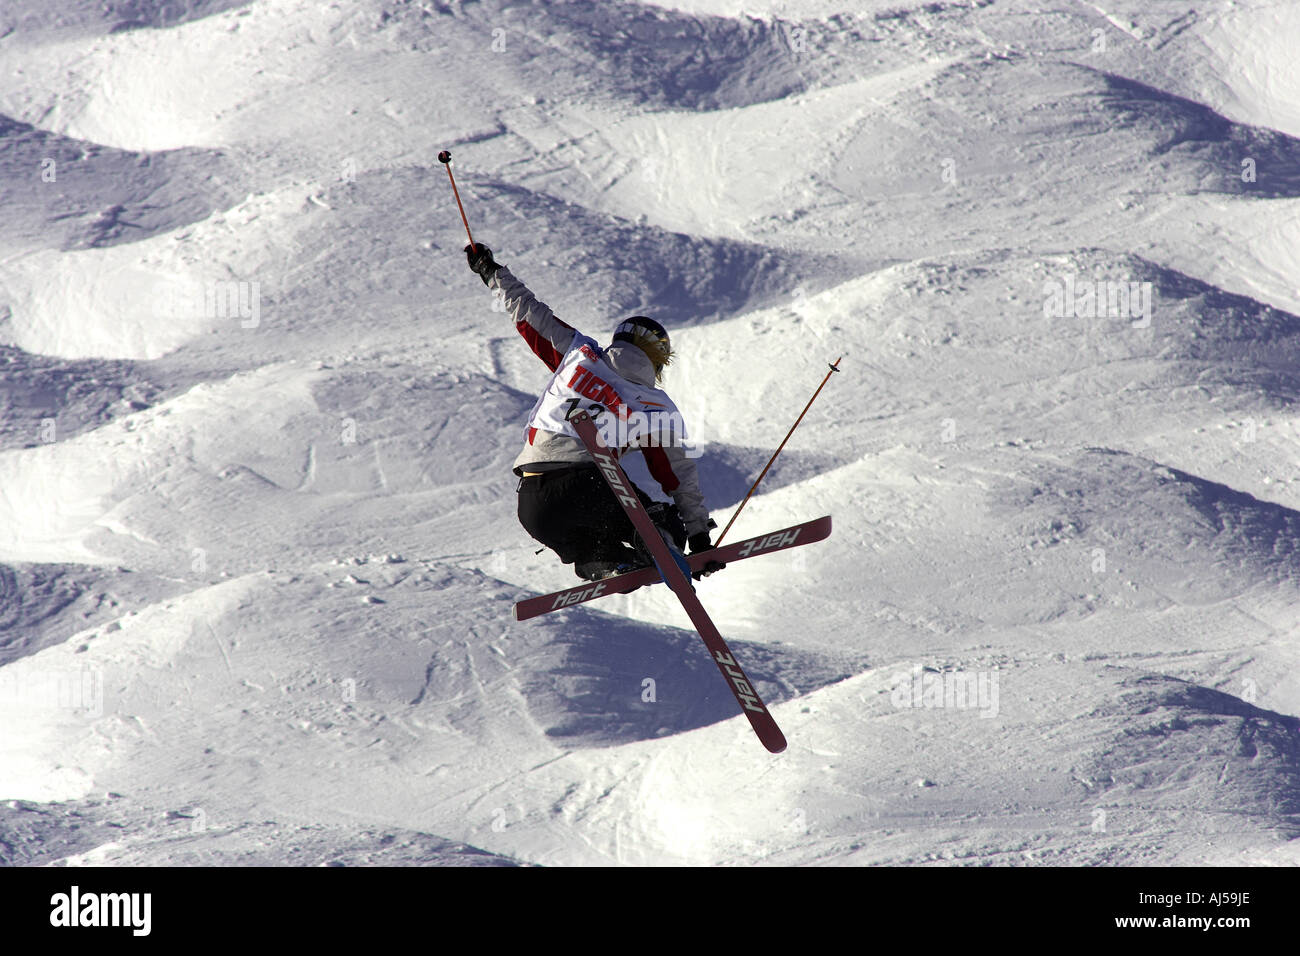 skier in freestyle world cup in tignes france - Stock Image